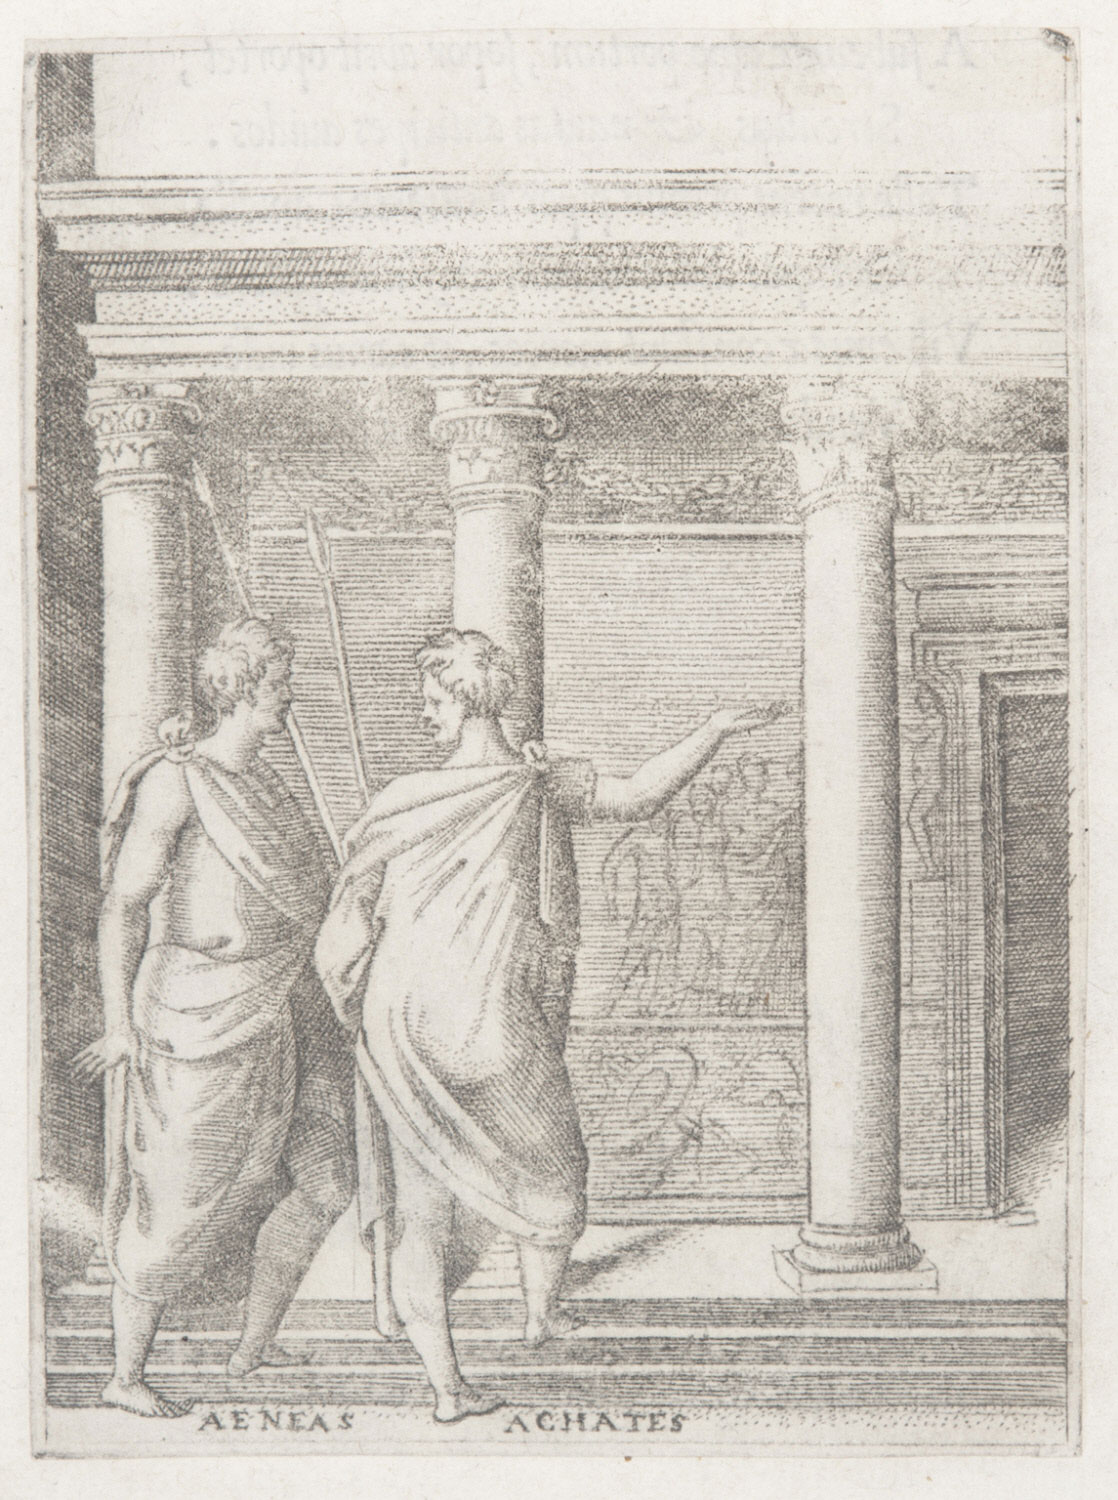 Aeneas and Achates